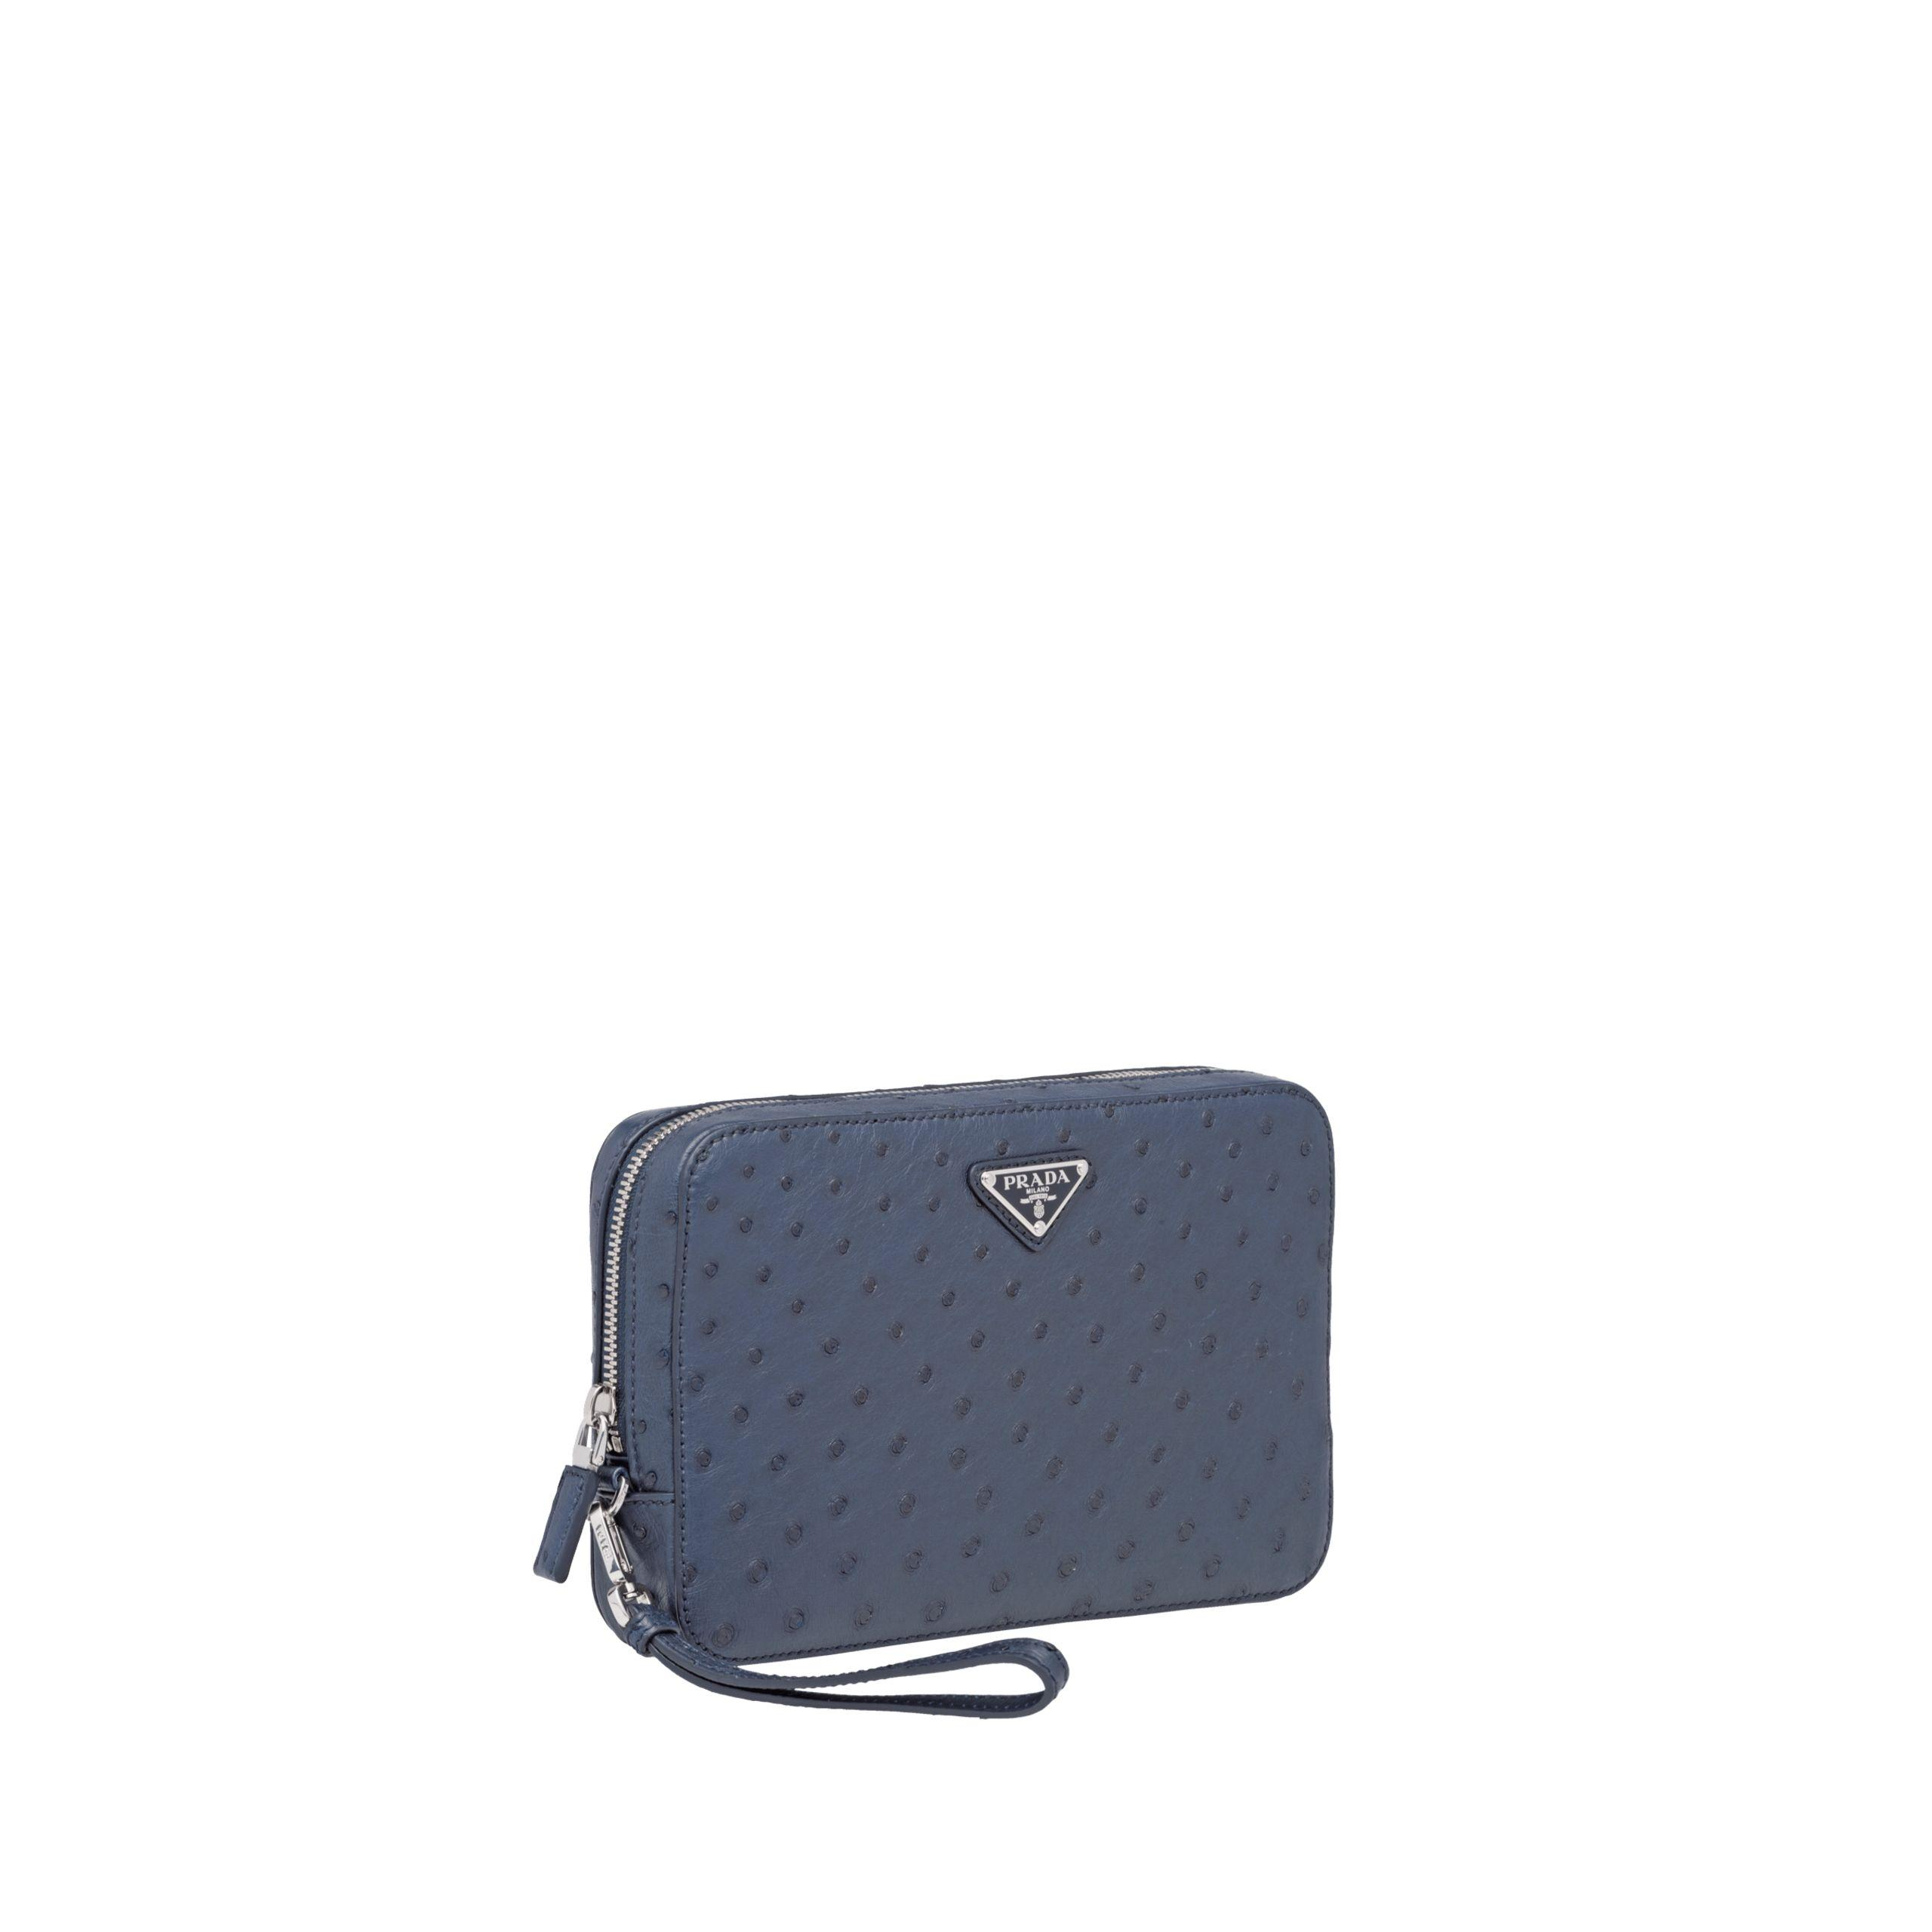 e59806229126 Prada - Blue Ostrich Leather Men's Bag for Men - Lyst. View fullscreen